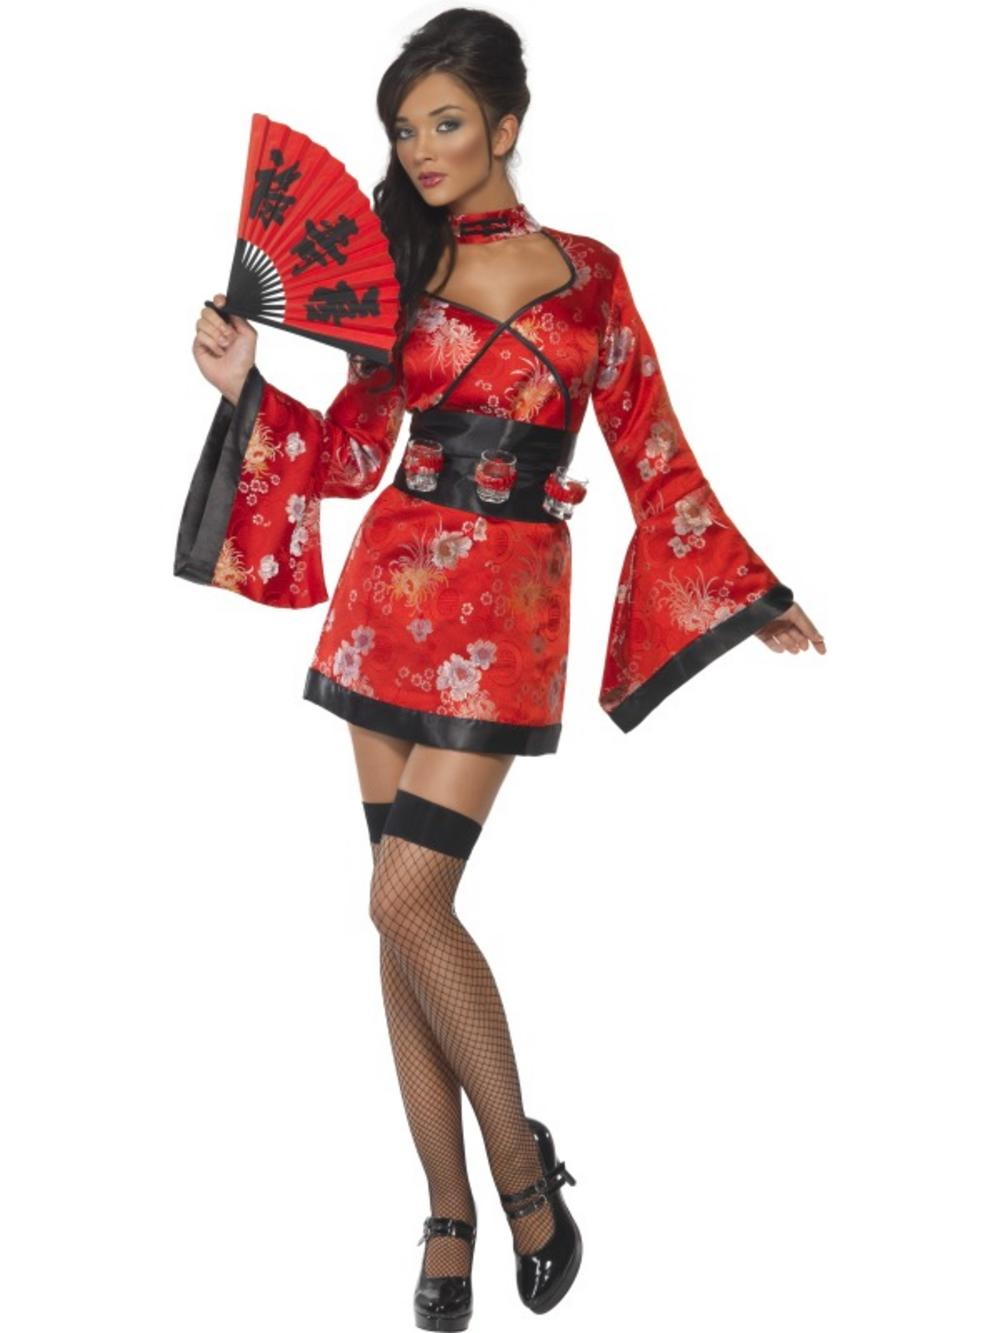 Fever Vodka Geisha Girl Costume  sc 1 st  Mega Fancy Dress & Fever Vodka Geisha Girl Costume | All Ladies Costumes | Mega Fancy Dress